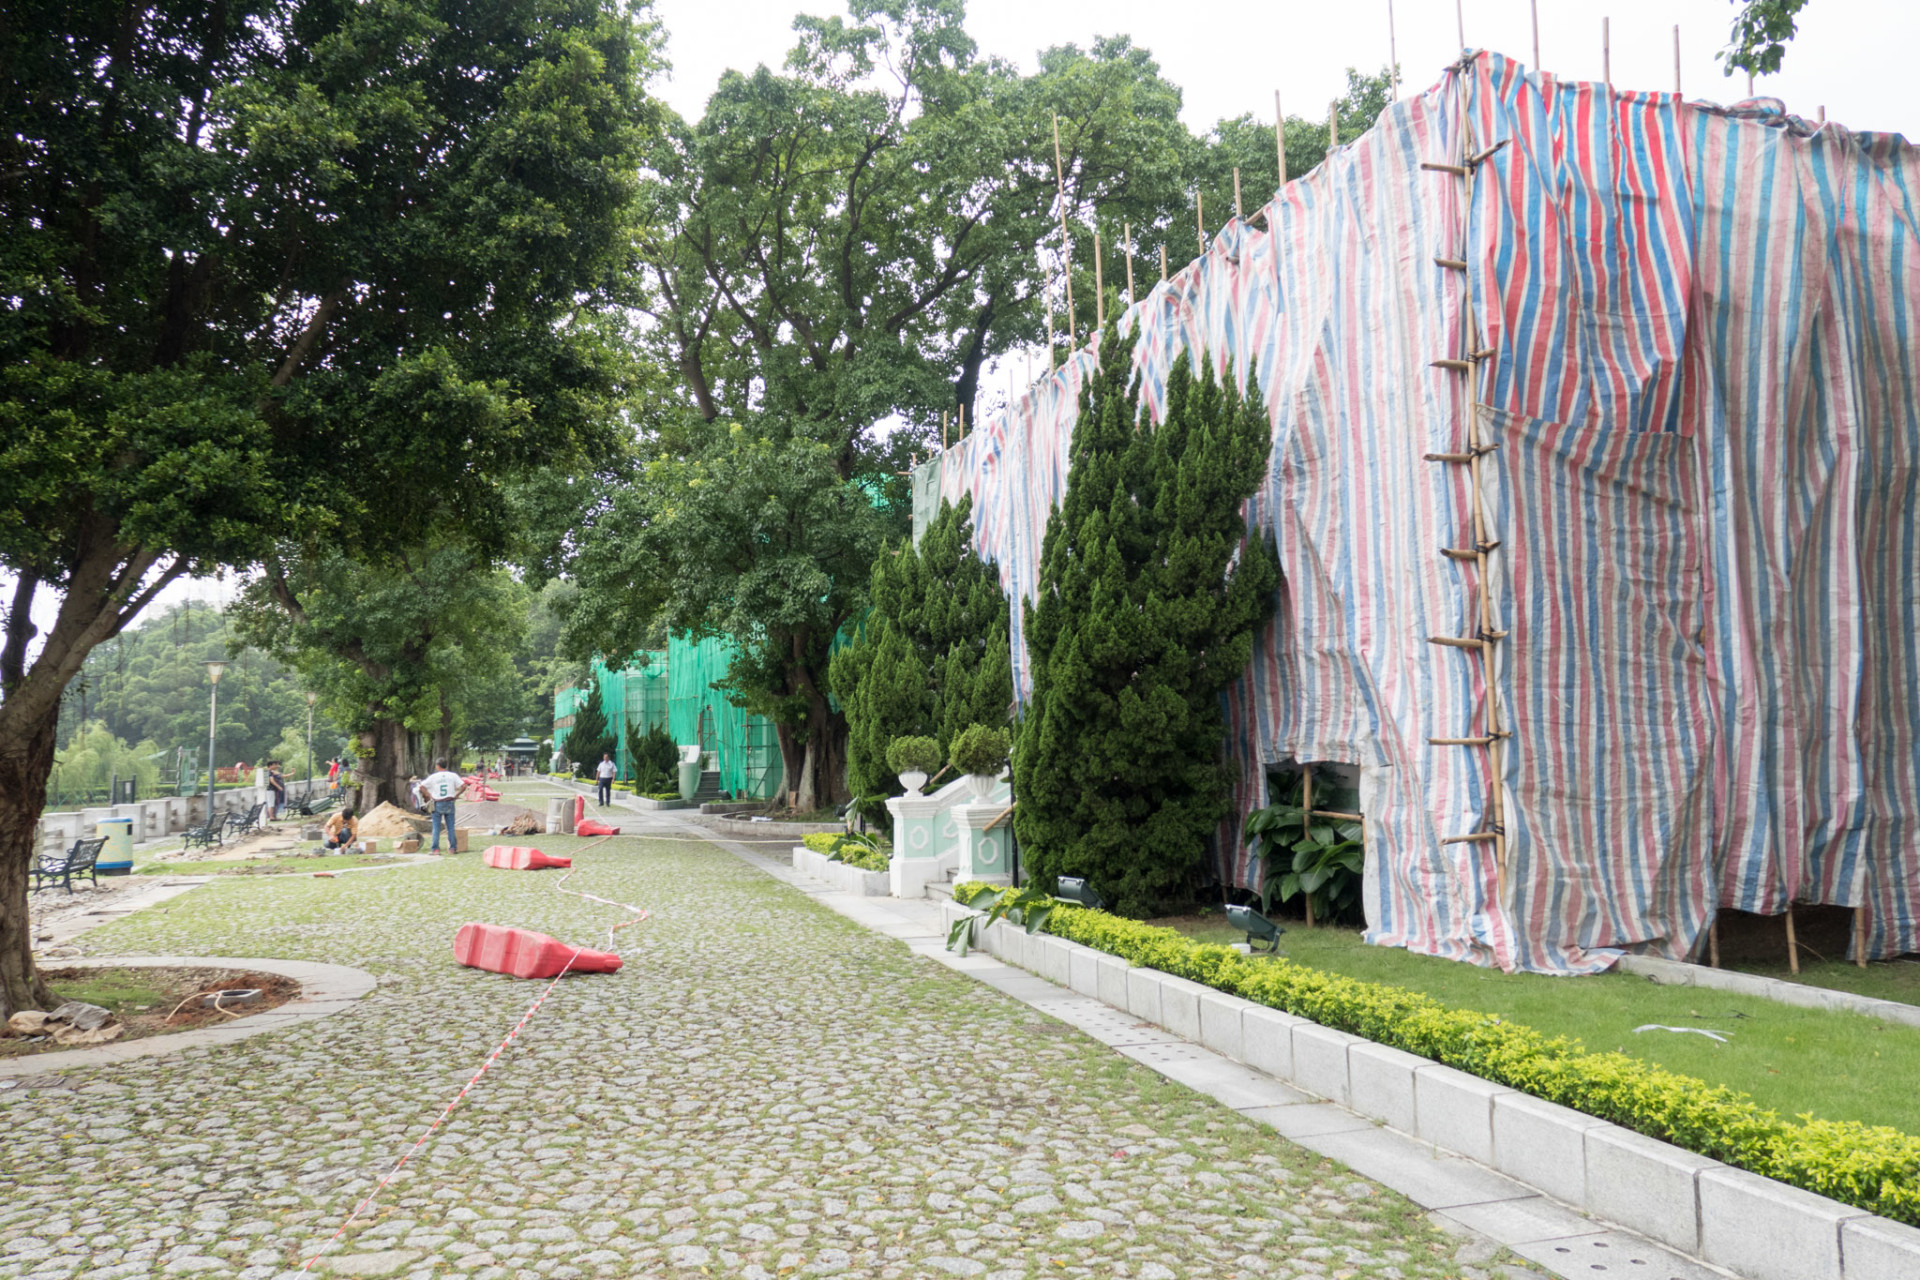 Macau government expects up to 15 per cent more visitors to revamped Taipa-Houses Museum area